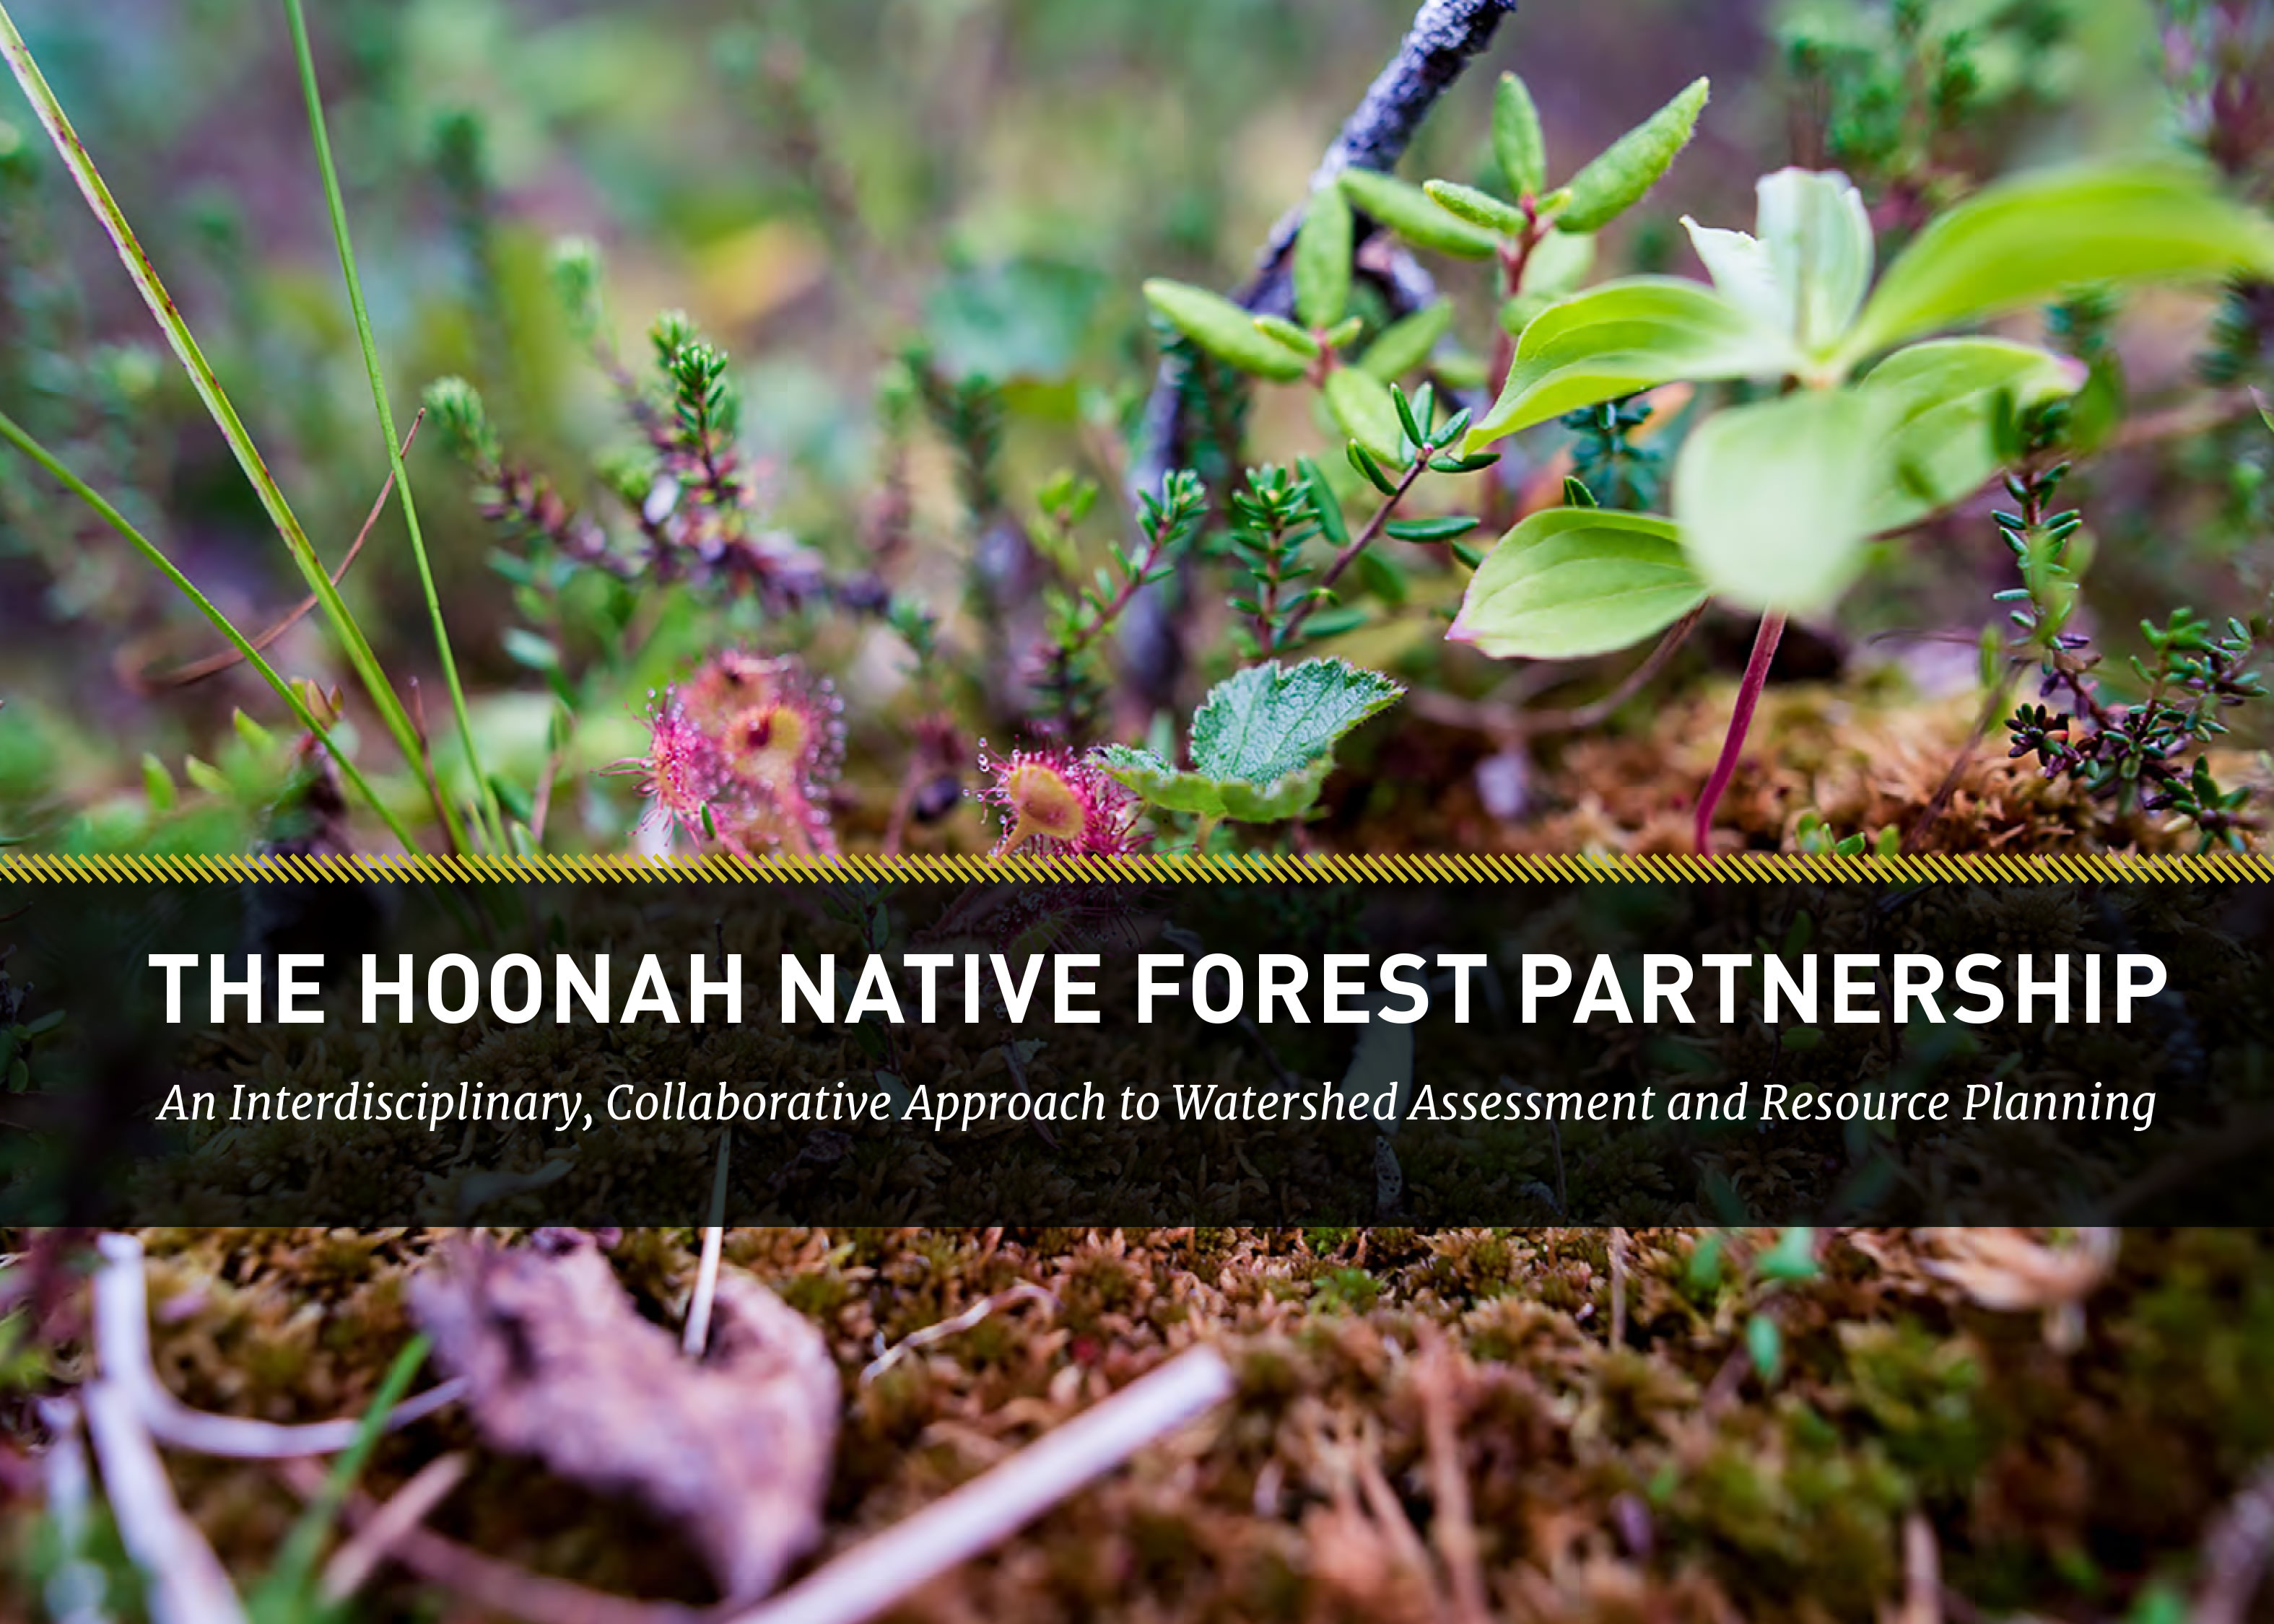 A comprehensive report from the Hoonah Native Forest Partnership.